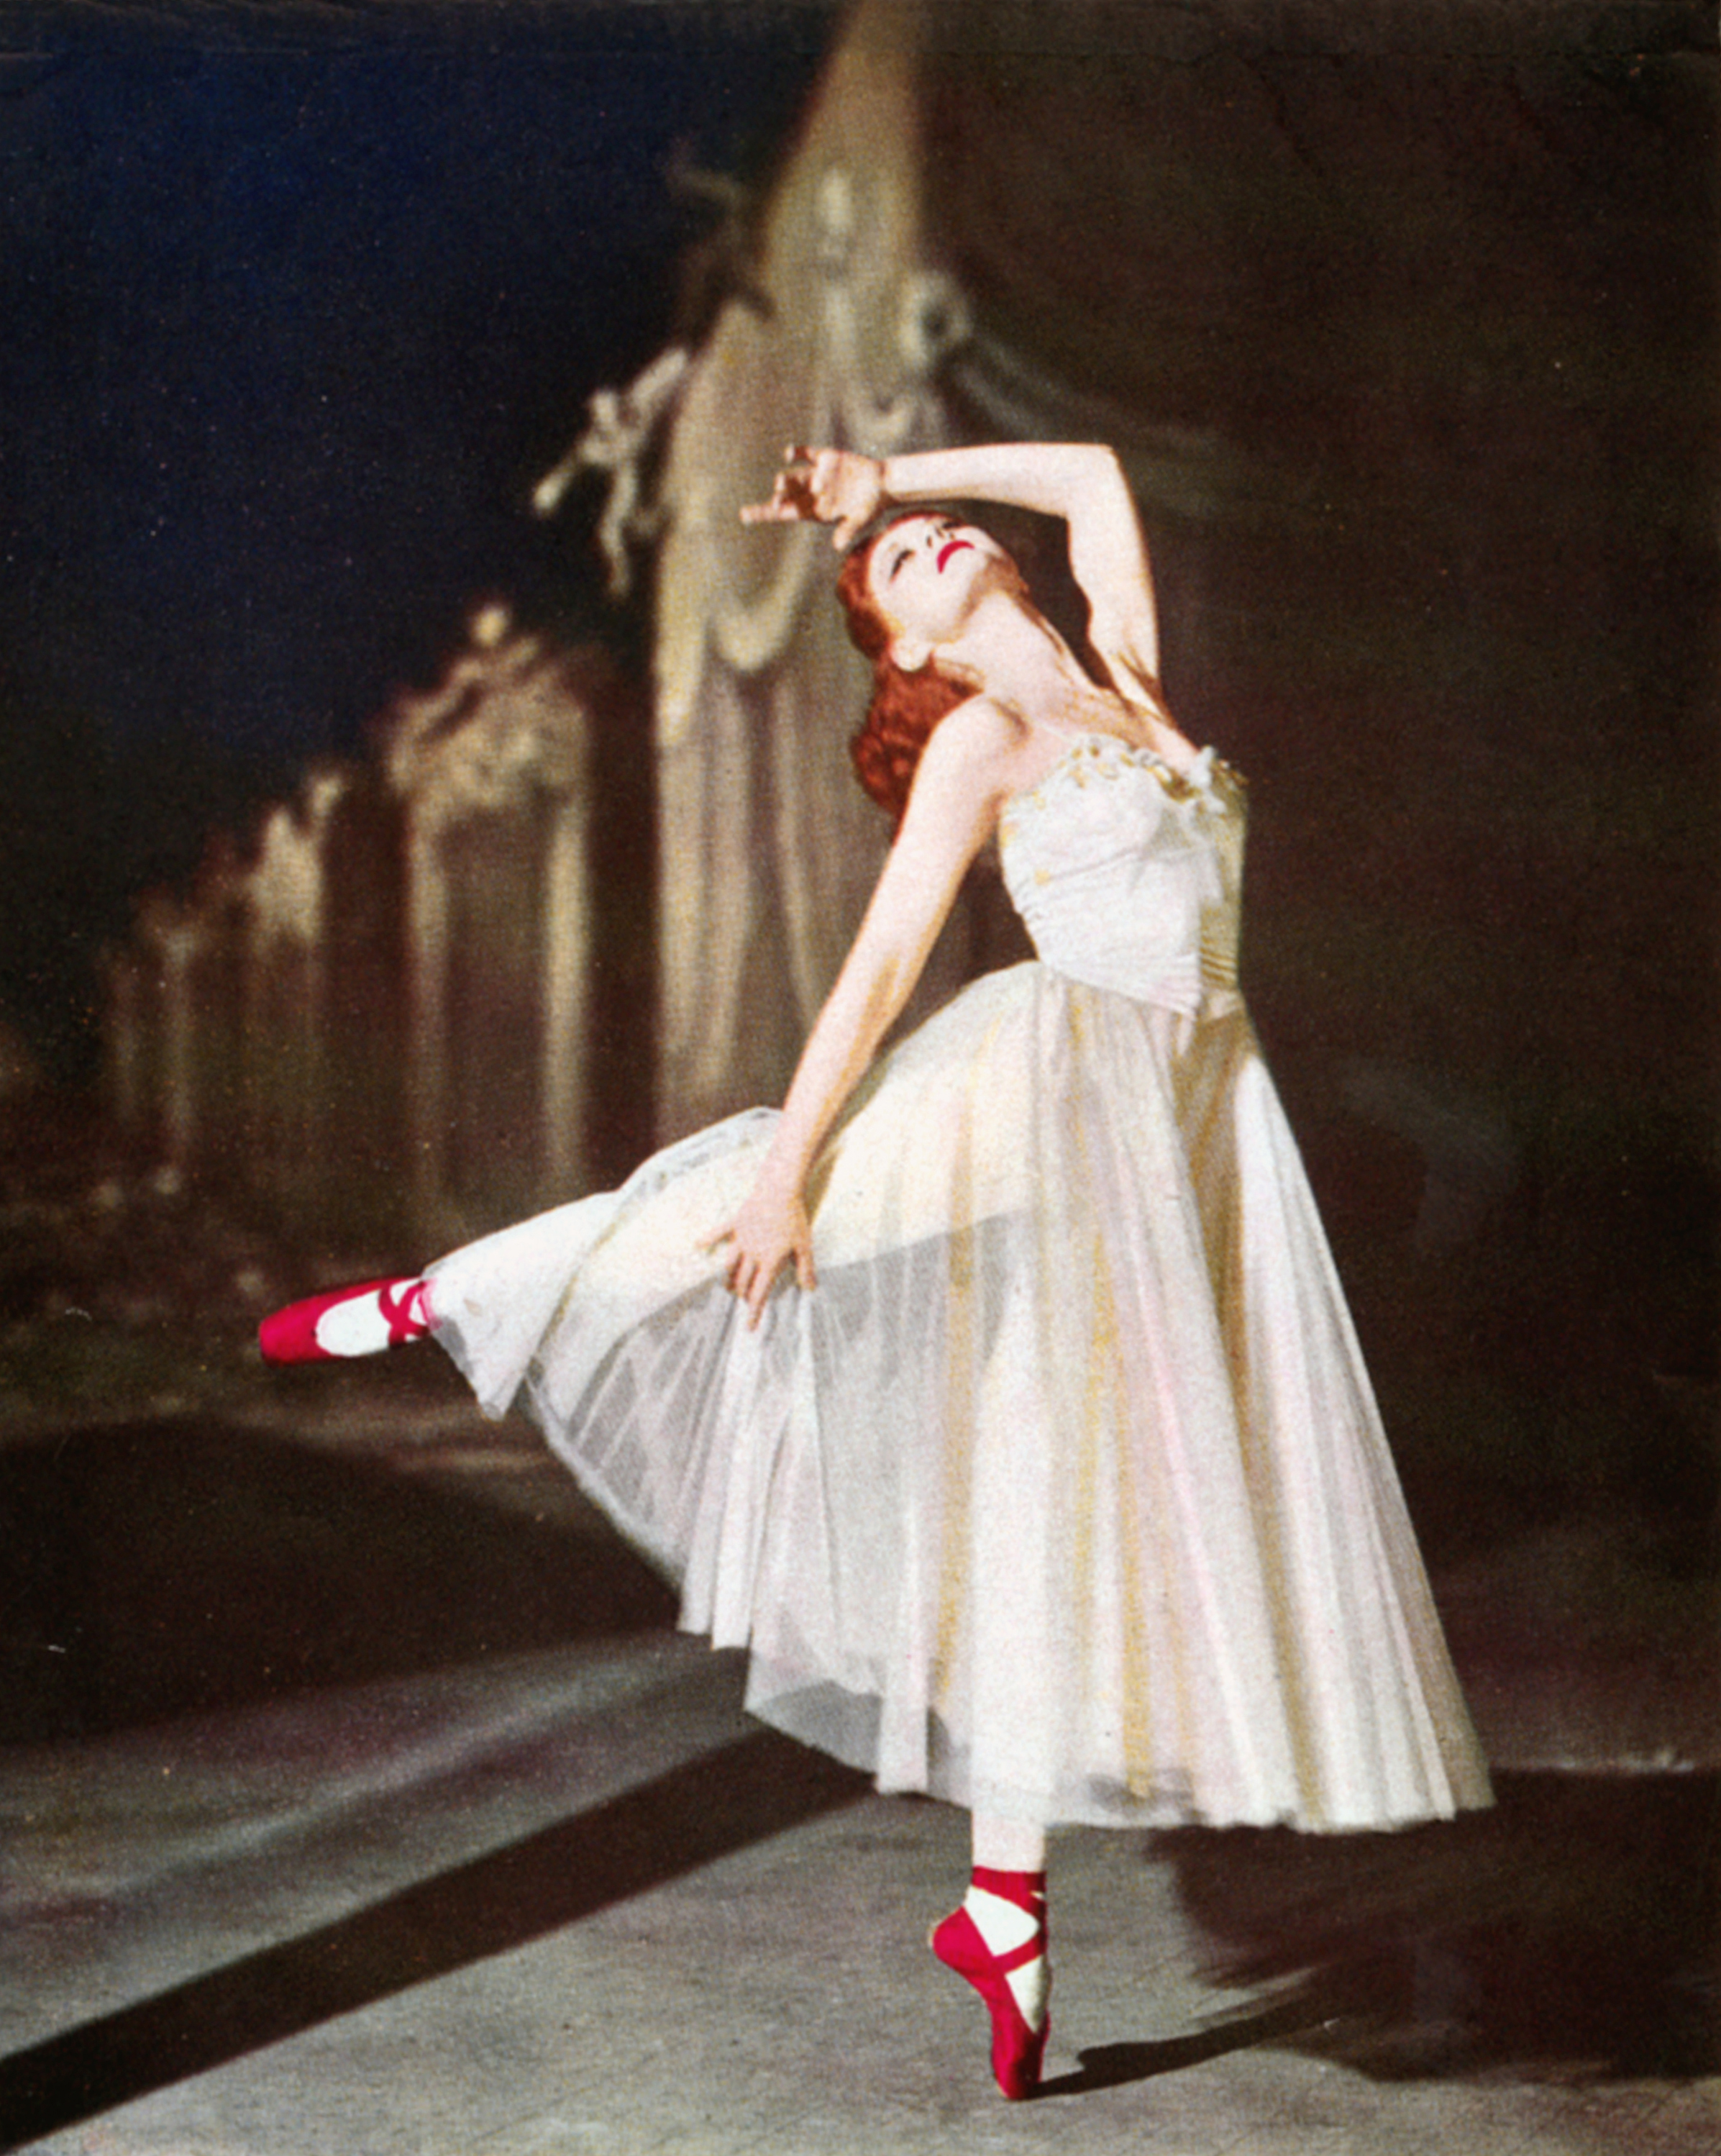 A still from The Red Shoes